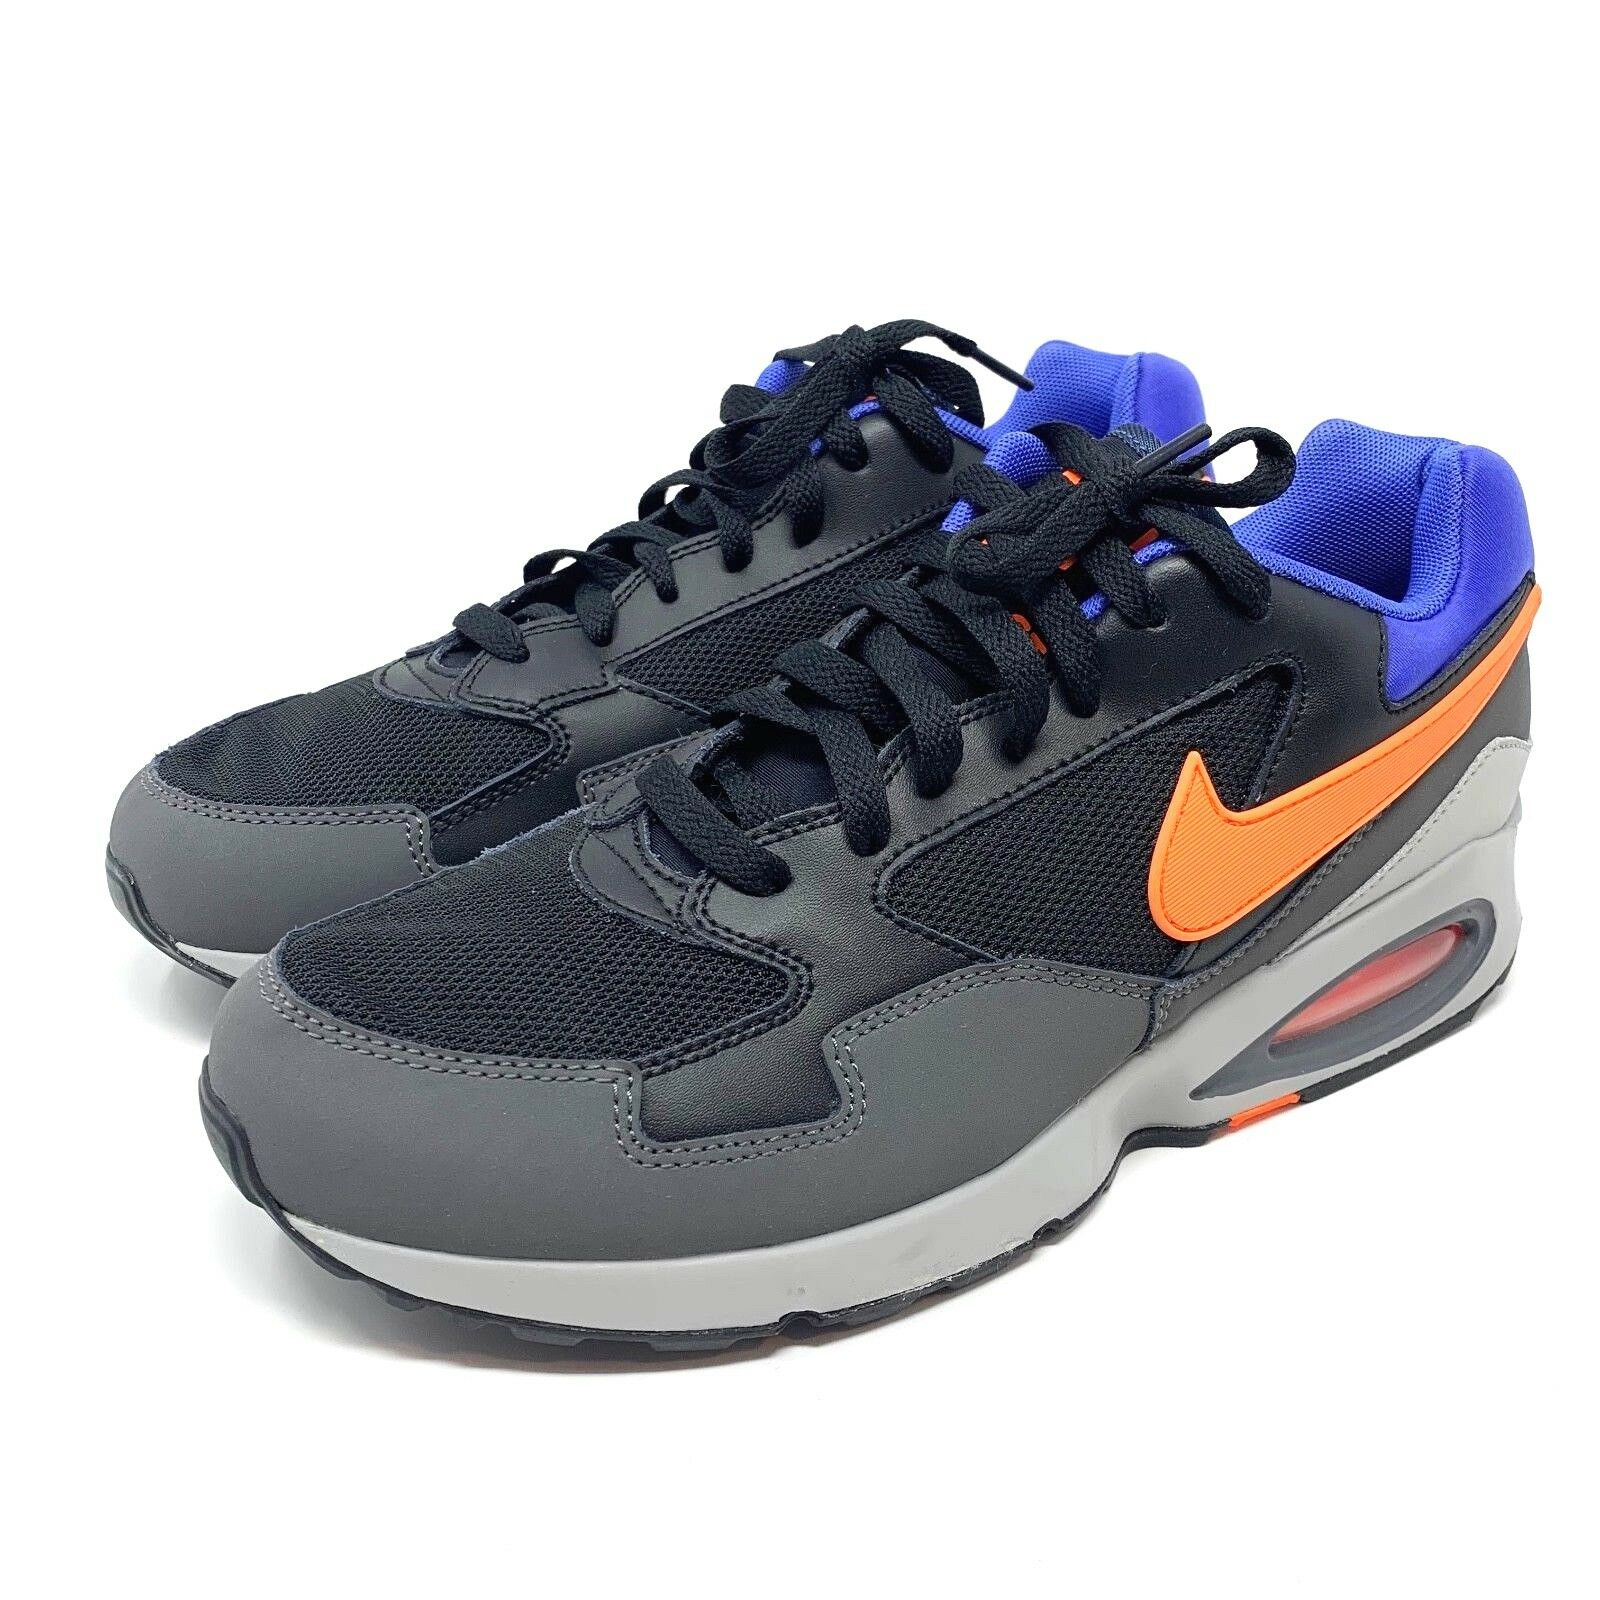 New Nike Air Max ST International shoes Men Size 9 Very Rare